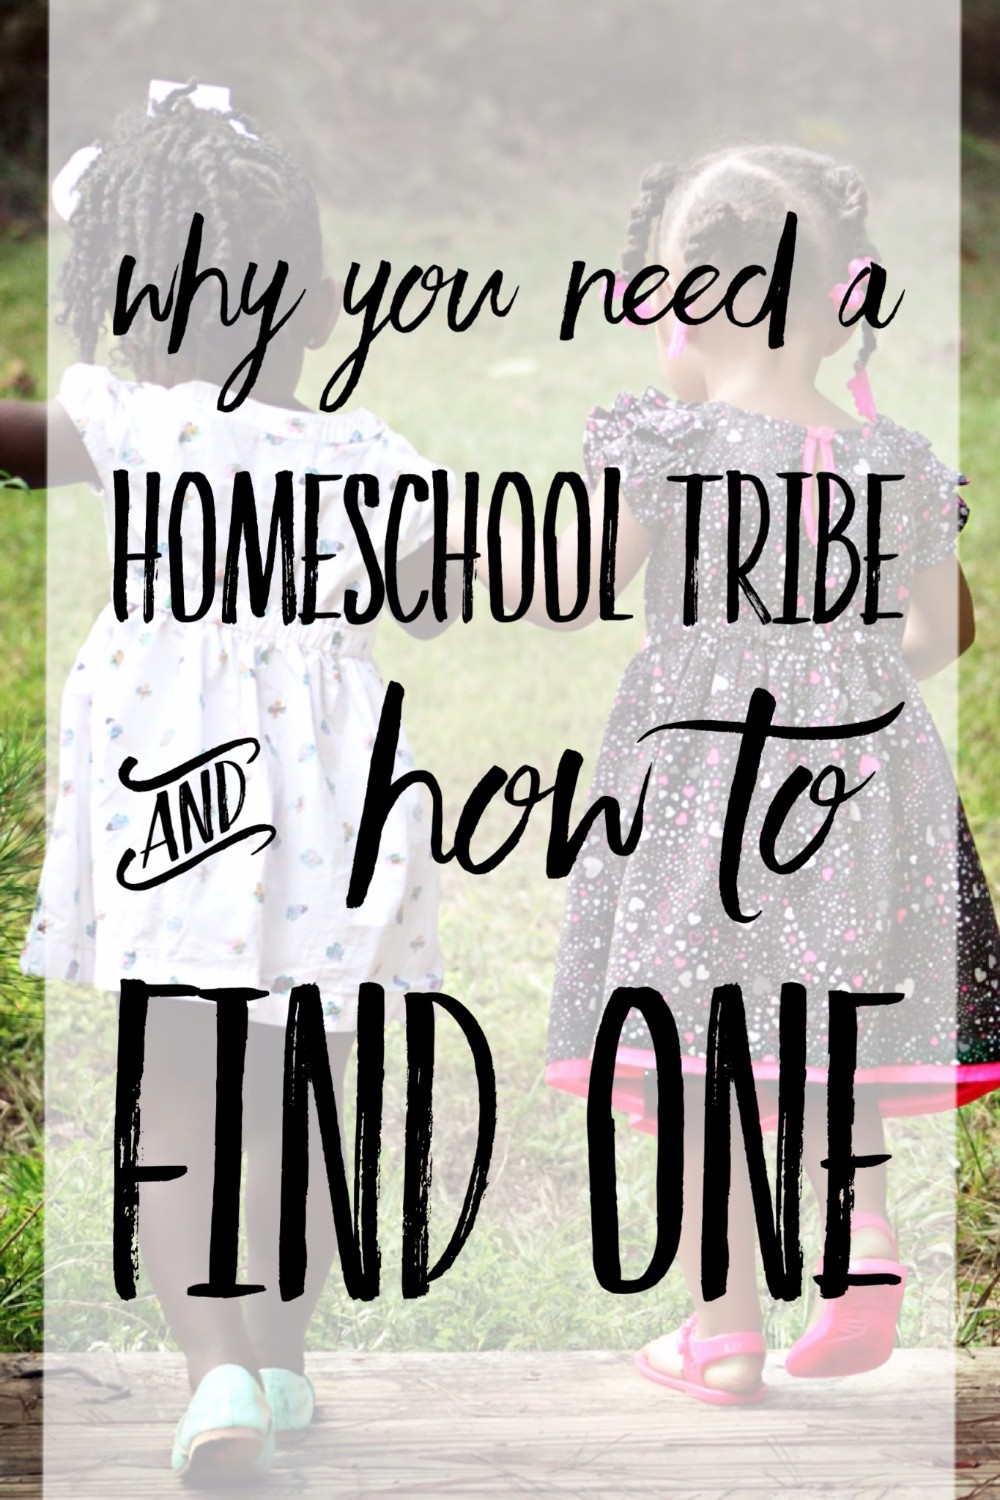 yes! yes! yes! Having a supportive community when homeschooling is imperitive! I'm so happy to have found my people!